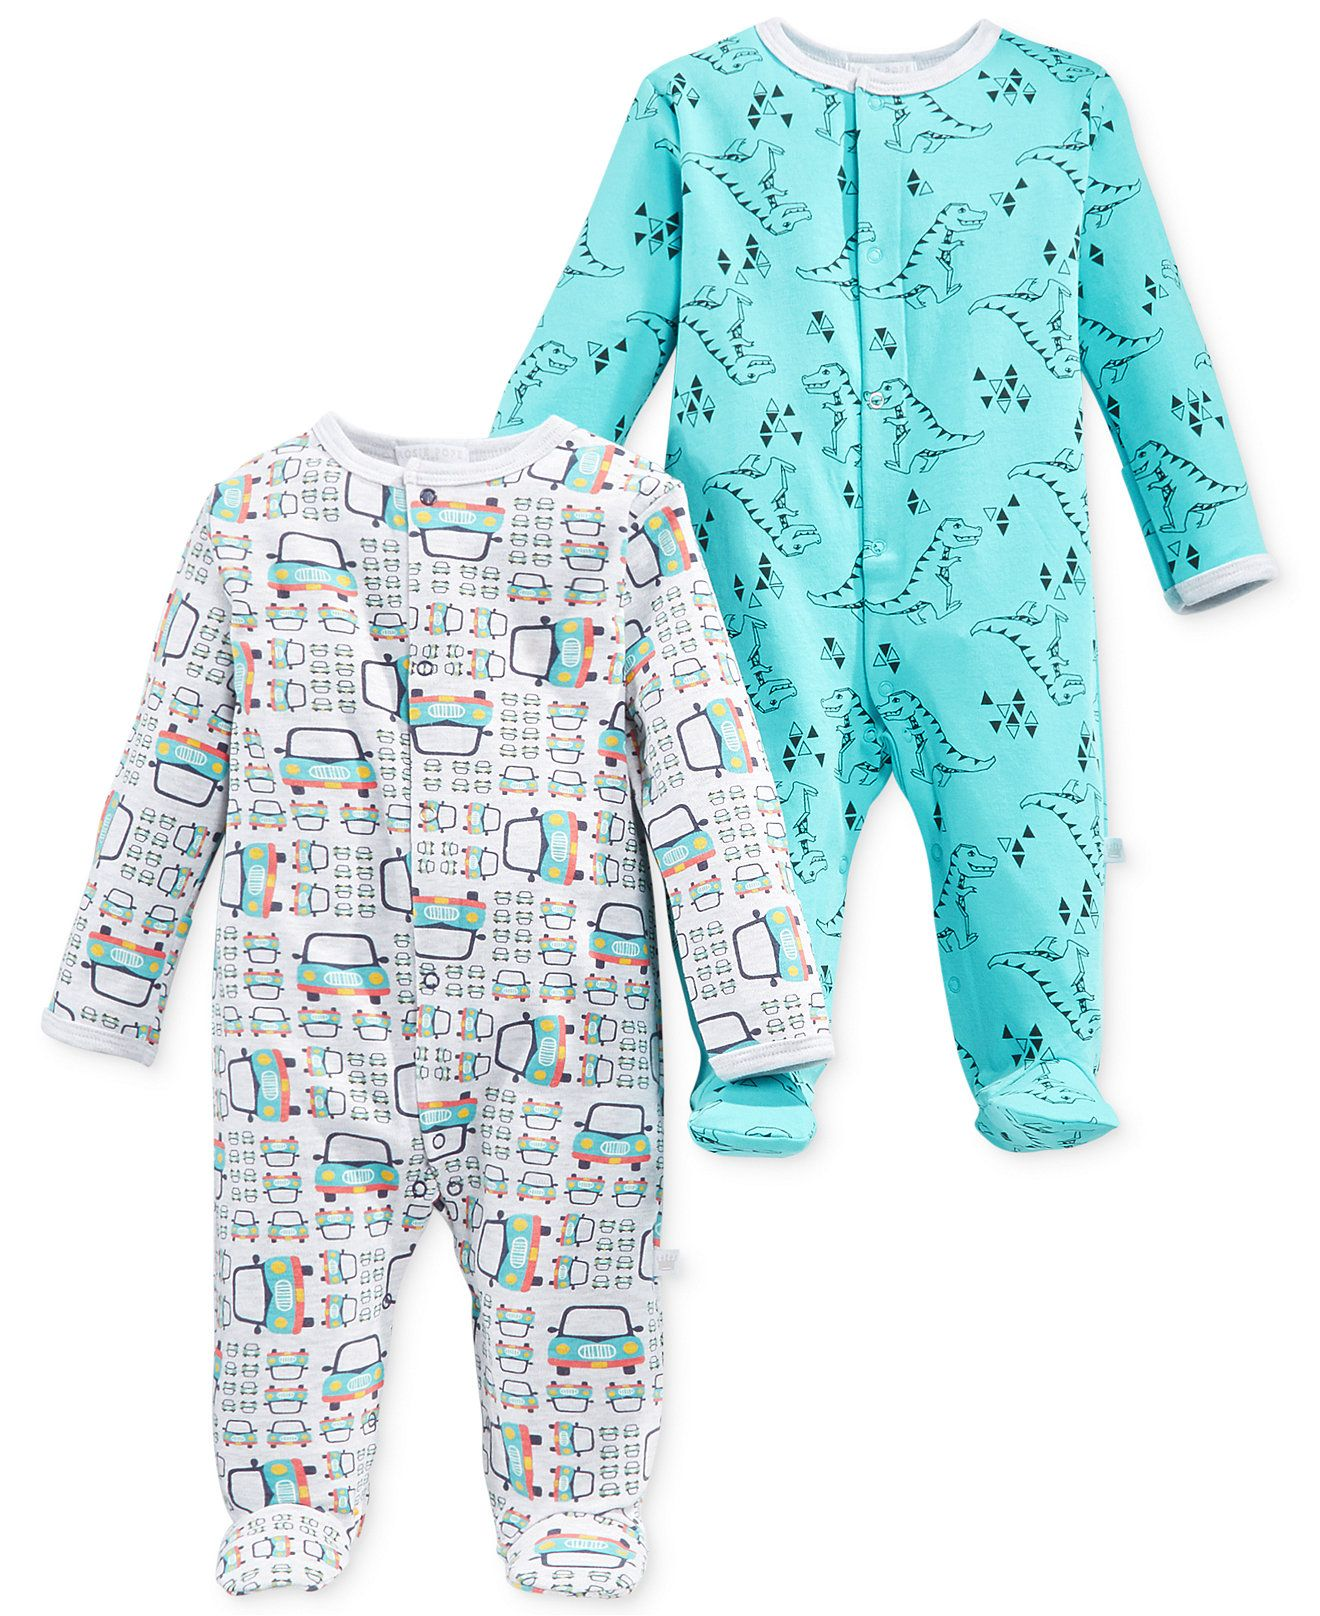 Rosie Pope Baby Boys' 2-Pack Printed Coveralls - Kids Baby Boy (0-24 months) - Macy's